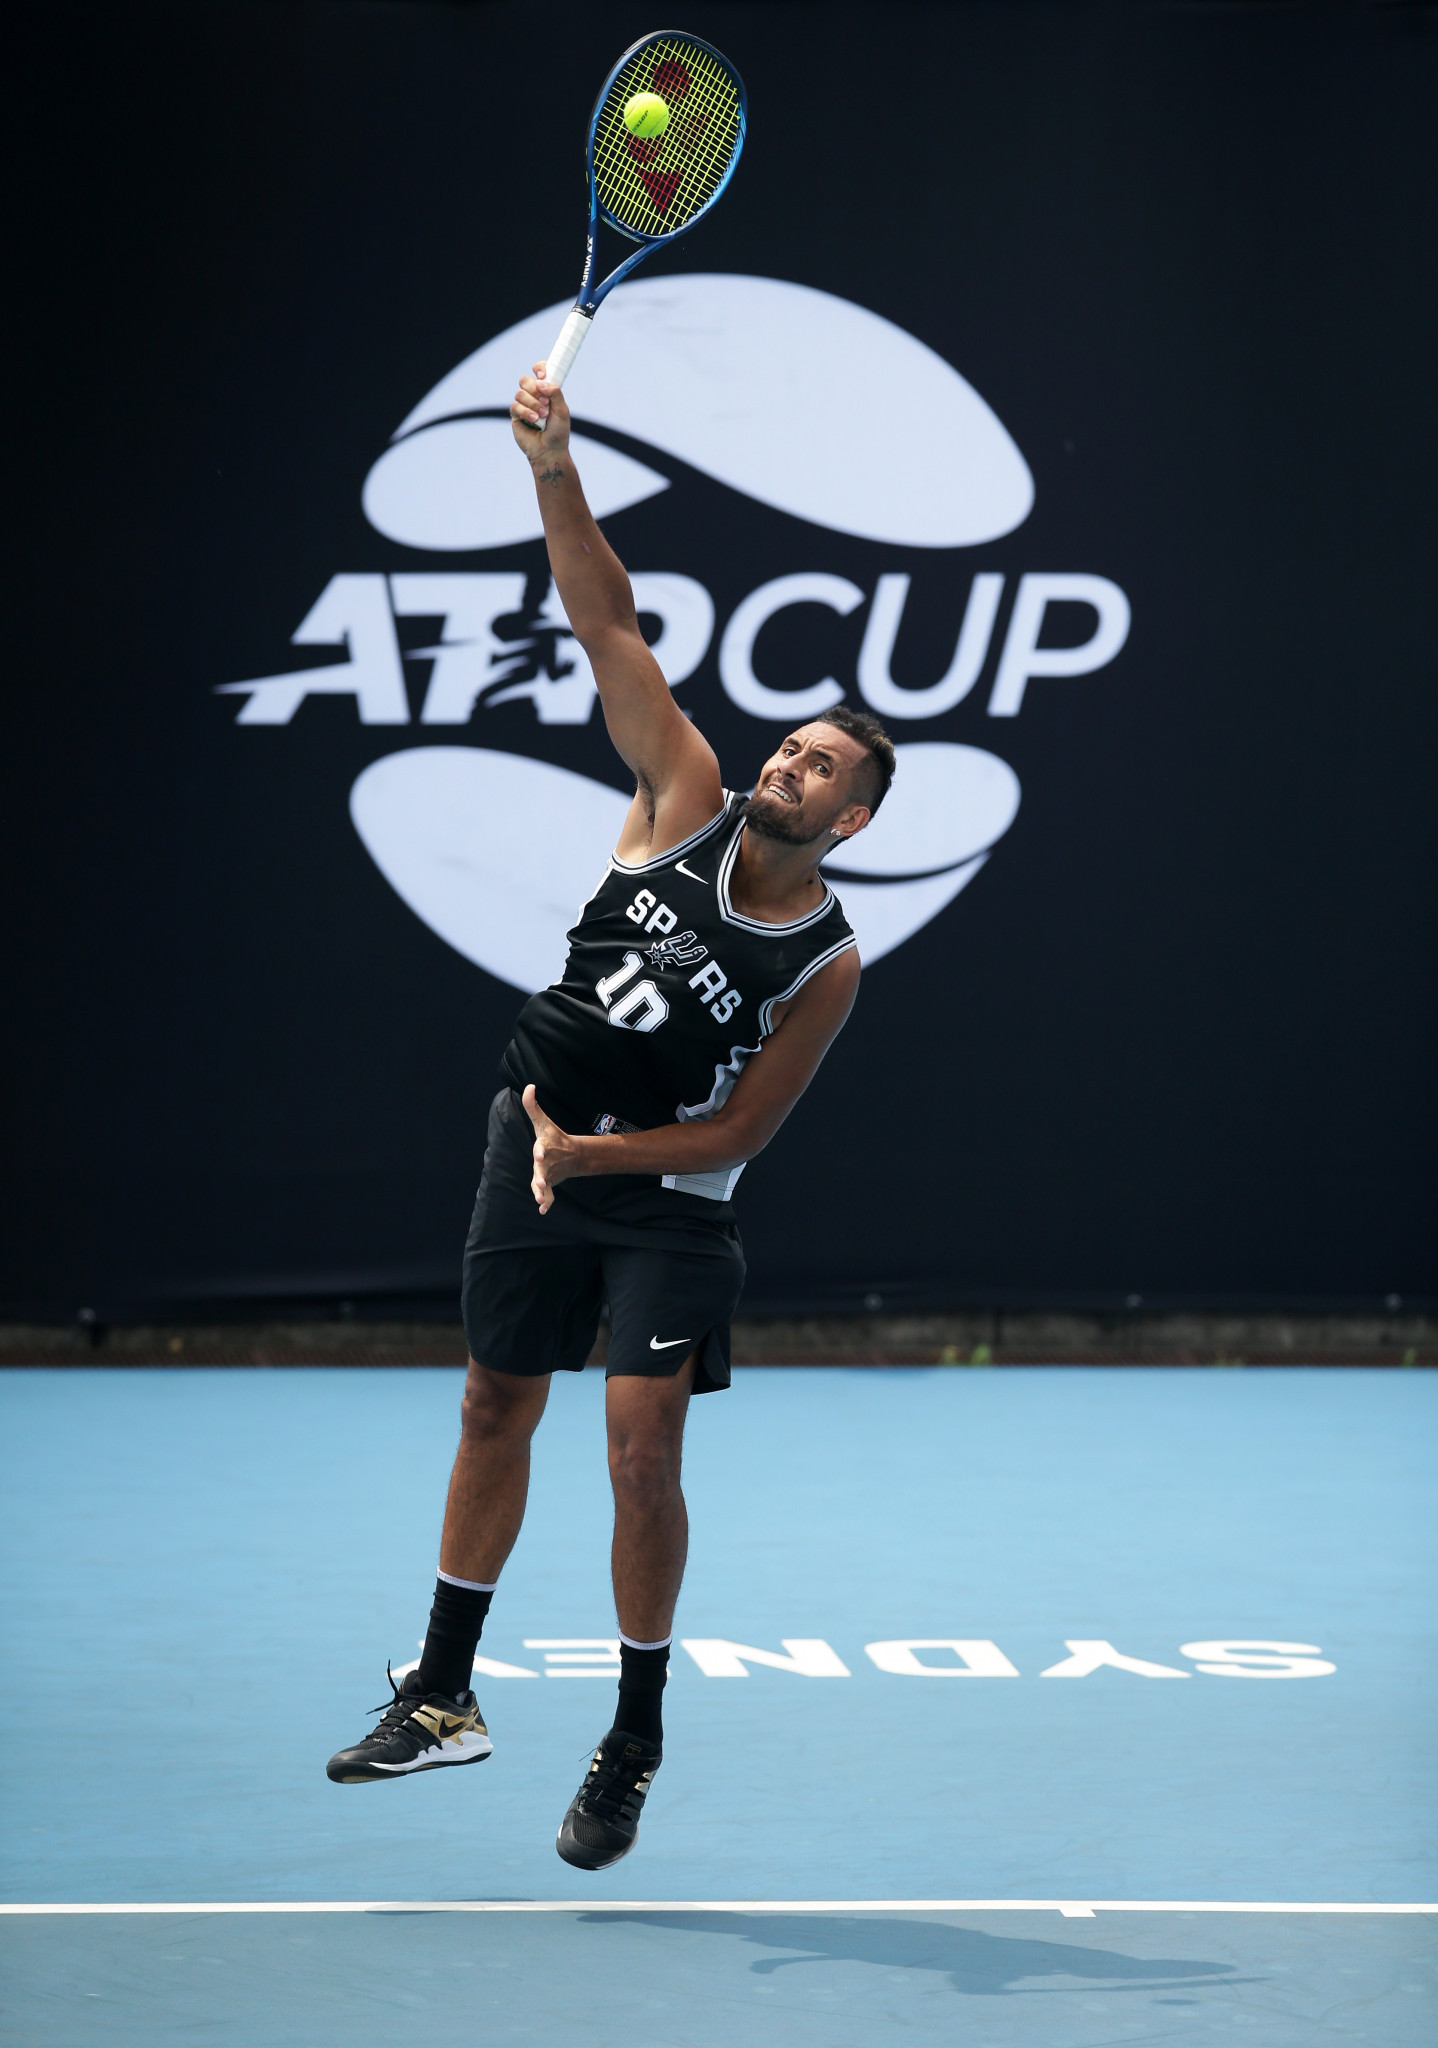 Nick Kyrgios has pledged cash for every ace he hits at the ATP Cup ©Getty Images